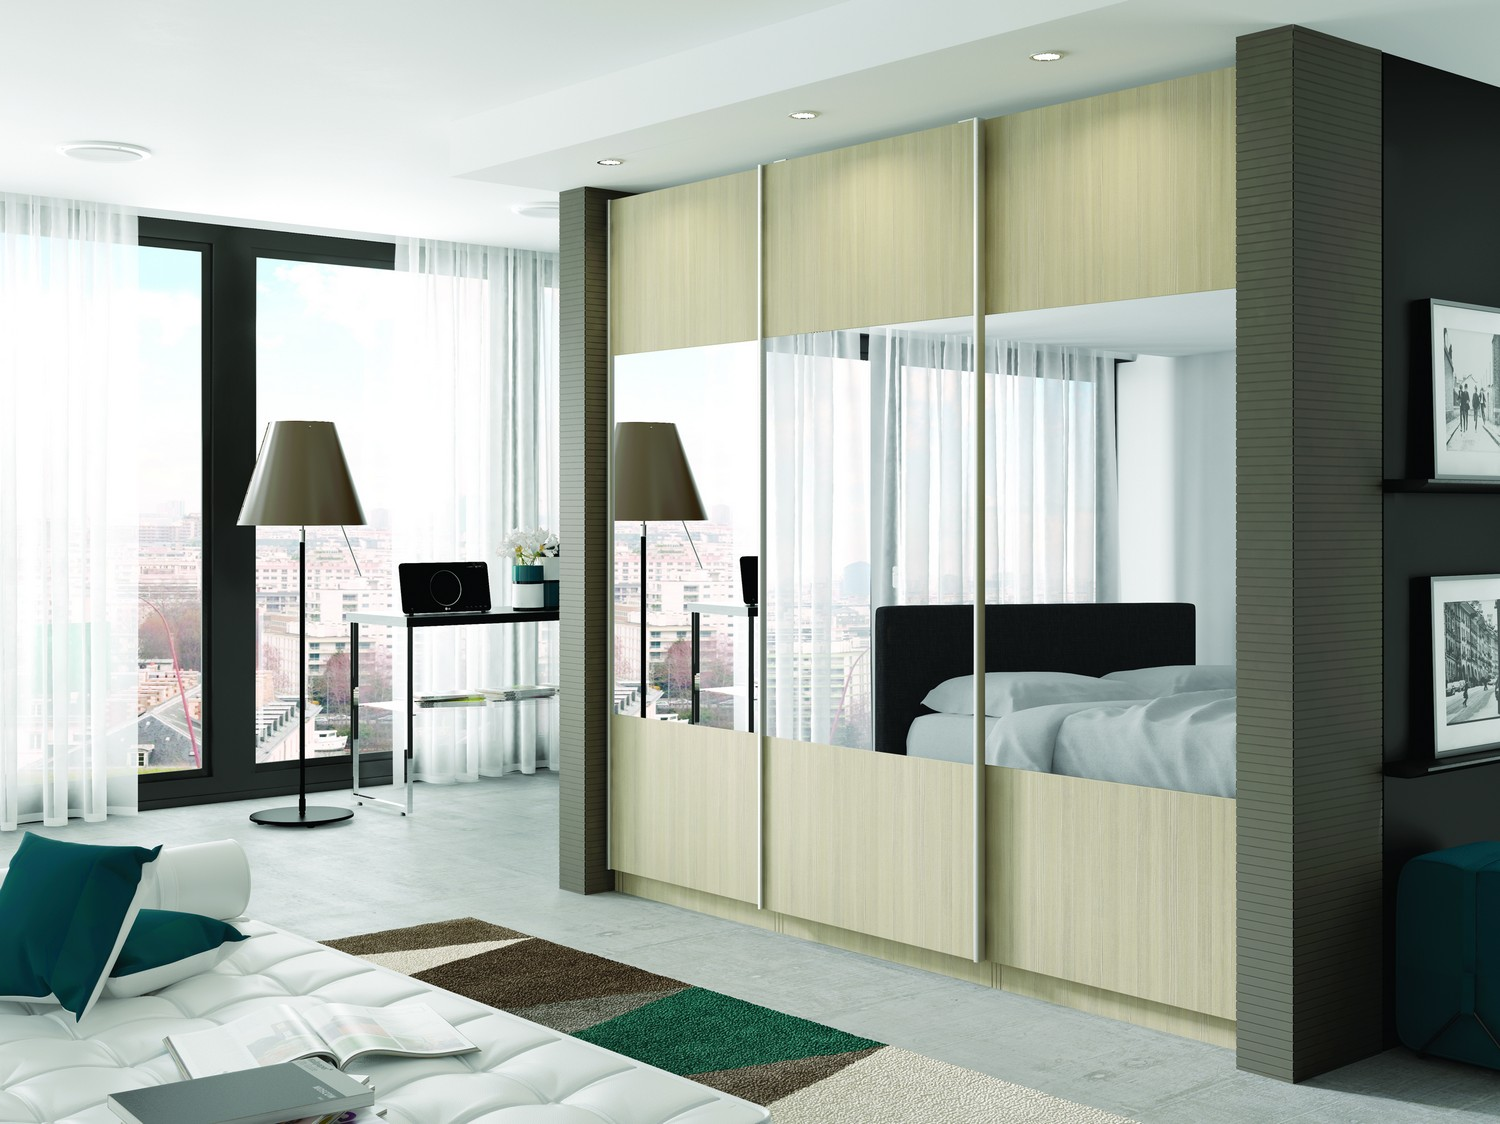 Beech woodgrain sliding wardrobe design with mirrored sections designed for a client's bedroom in Liverpool city centre. The sliding wardrobe features our effortless glide system and has been manufactured to fit within a pre-existing alcove.